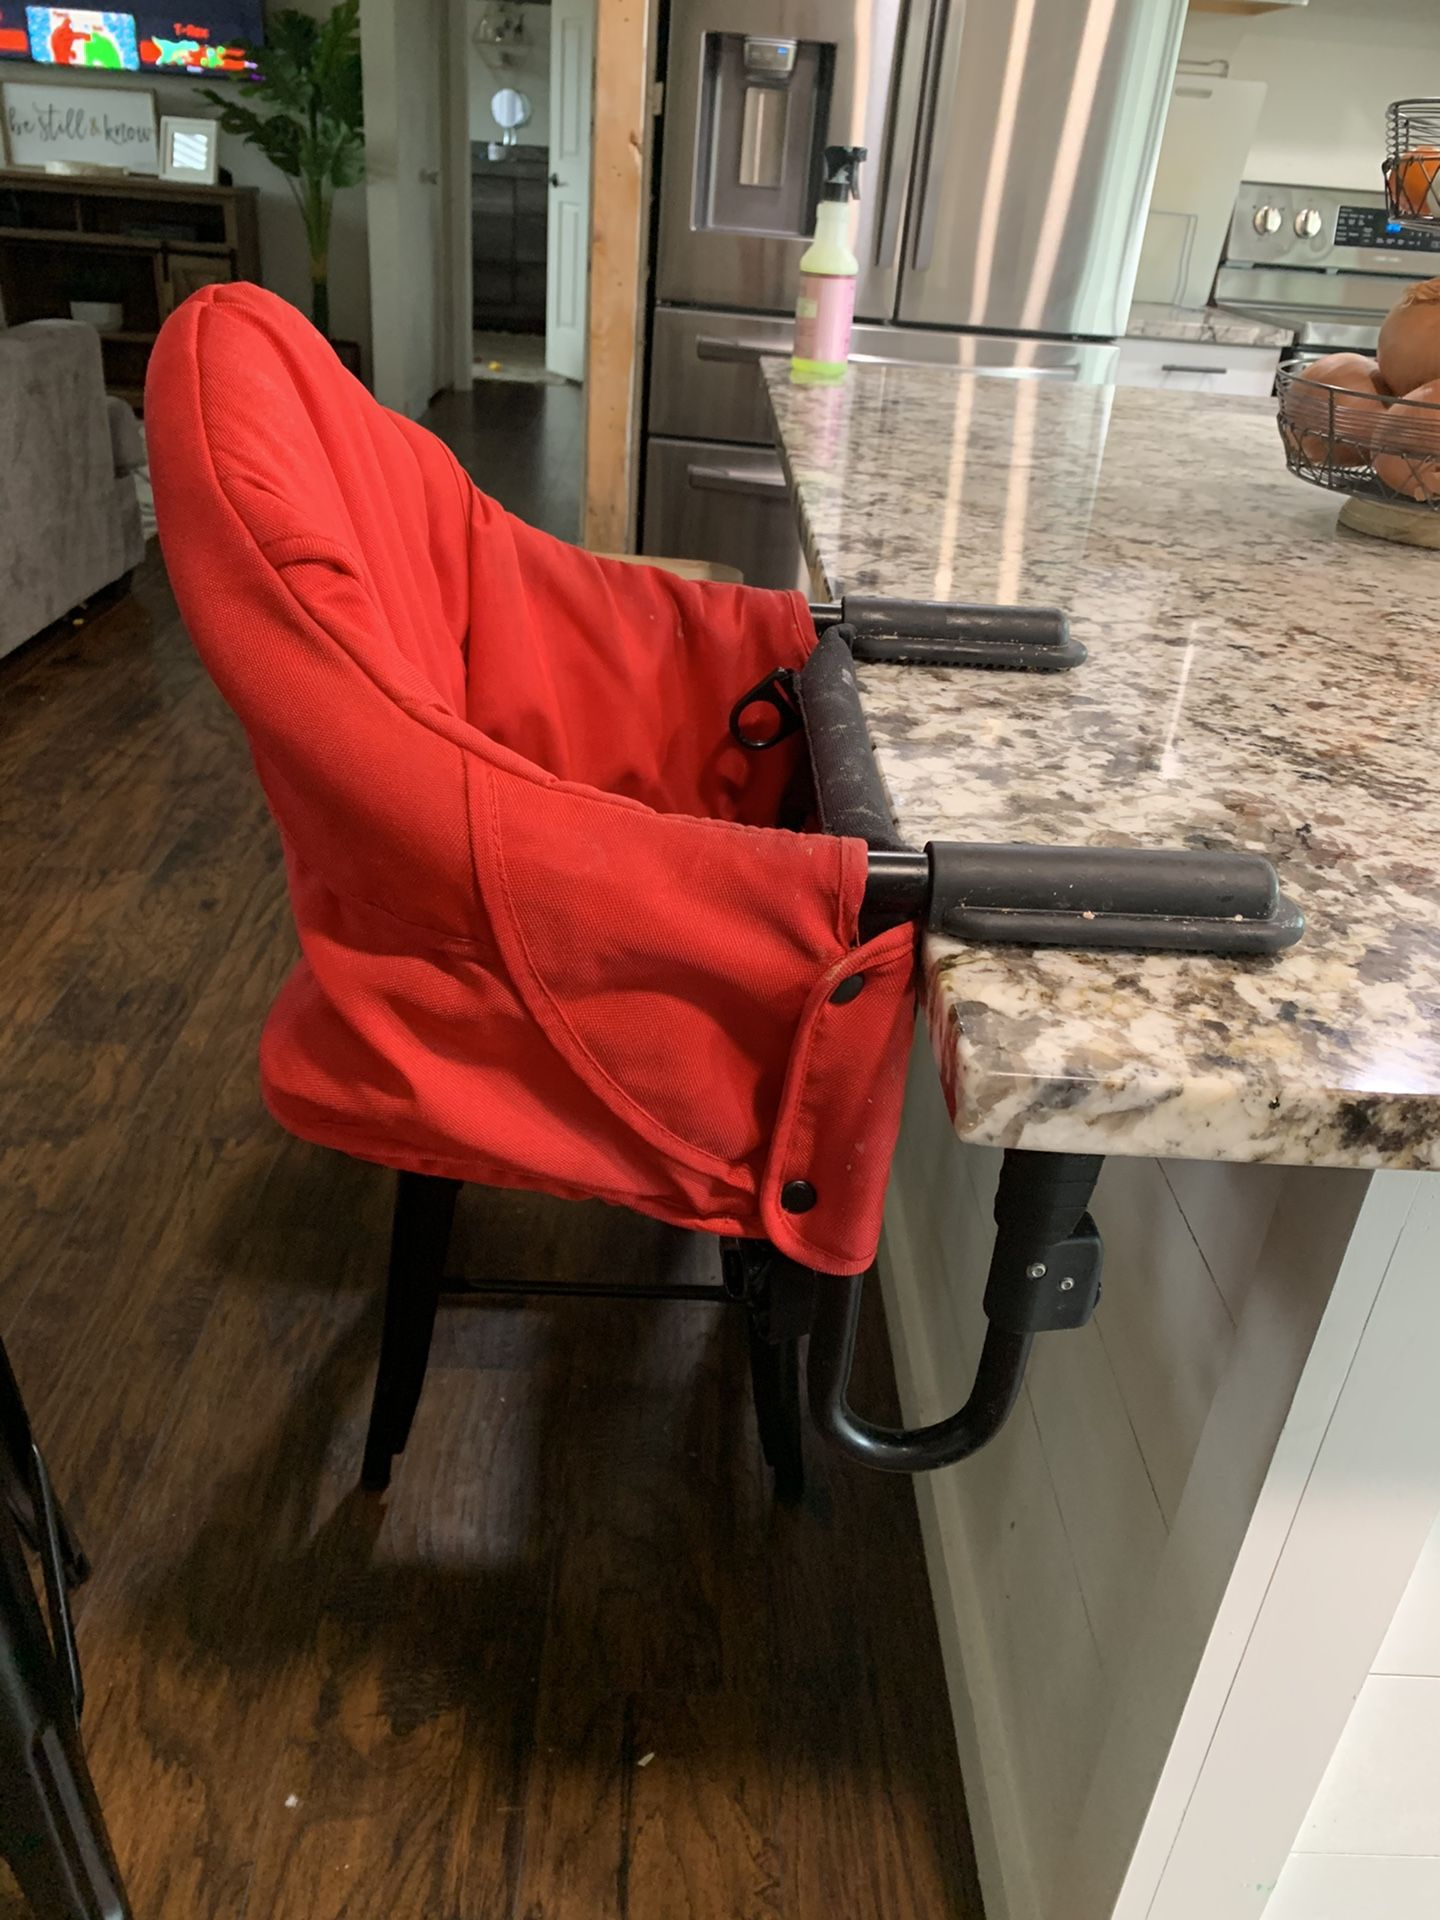 Hanging High Chair